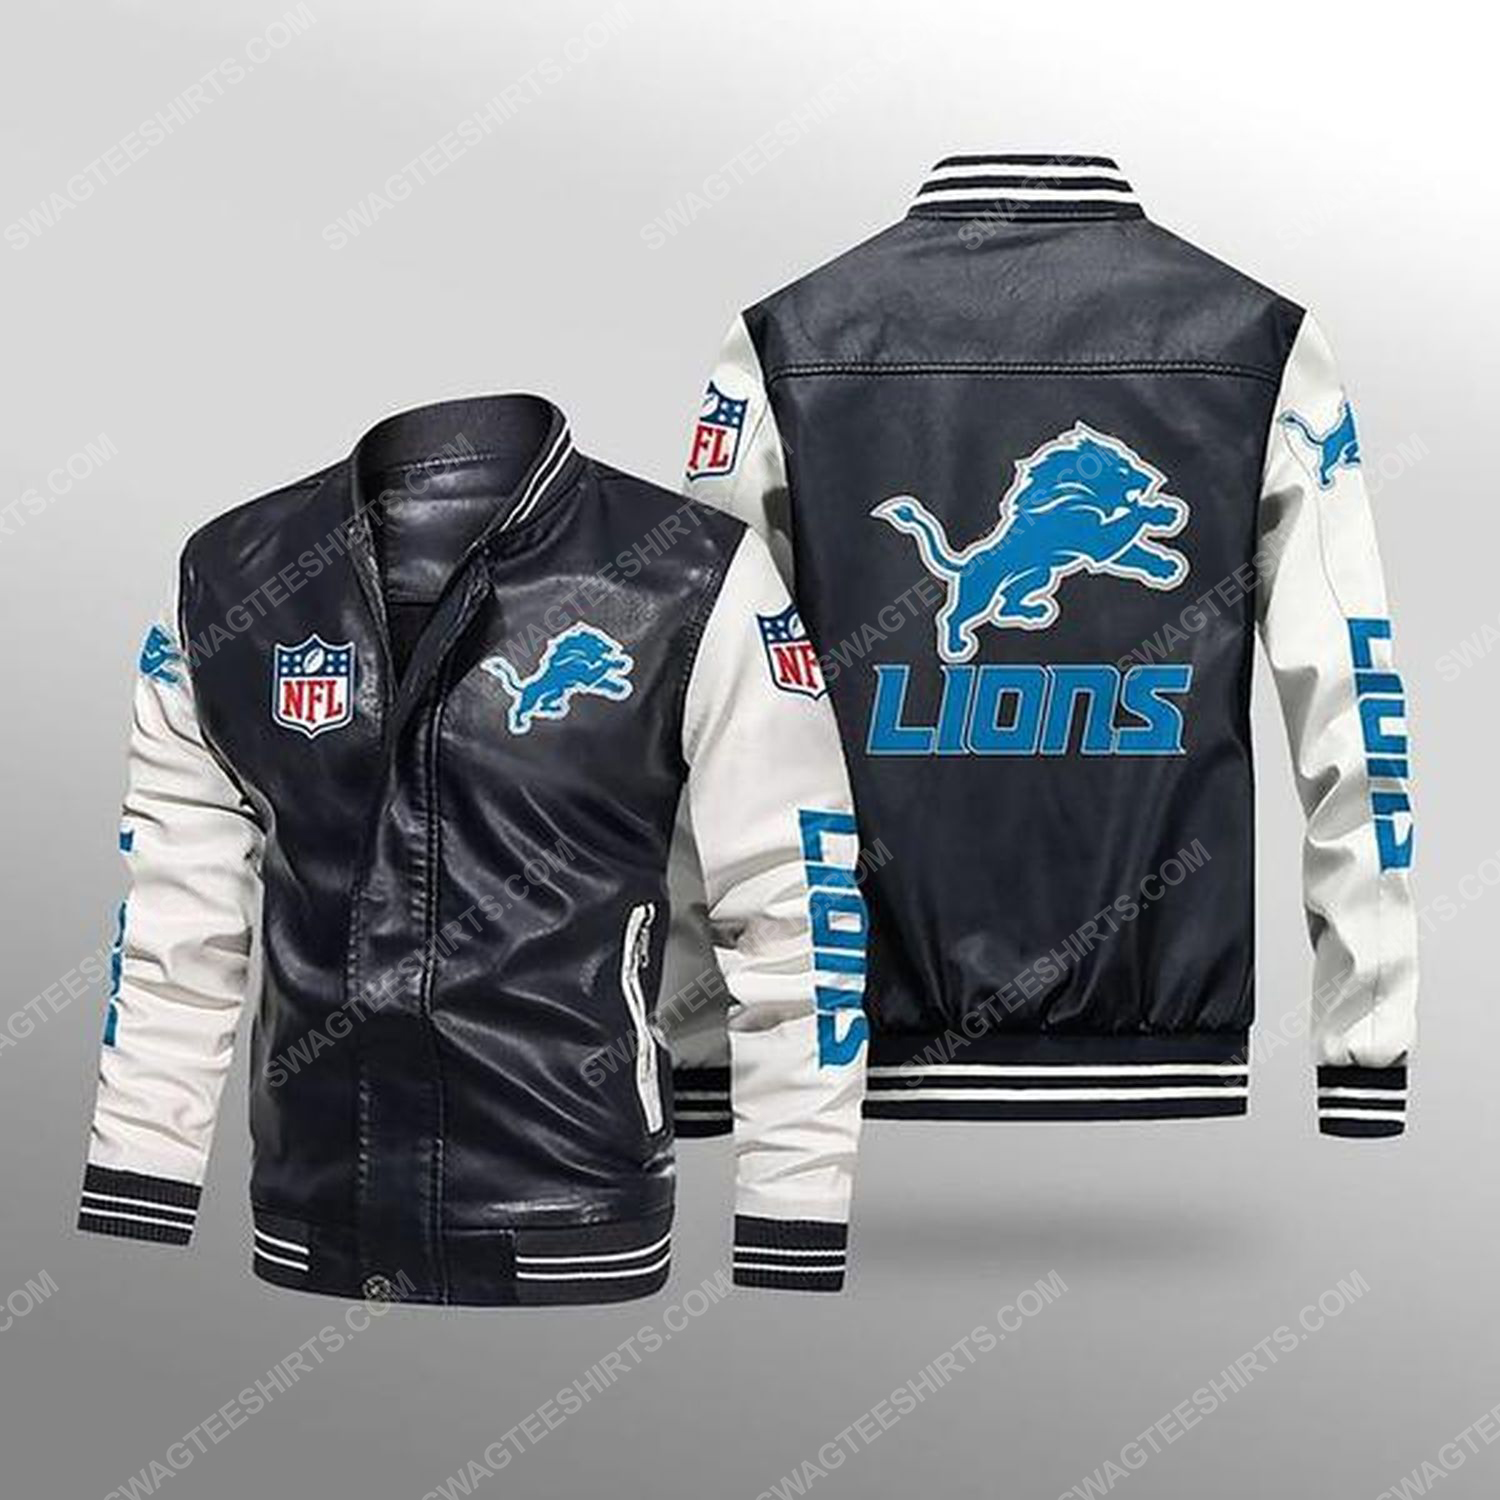 Detroit lions all over print leather bomber jacket - white